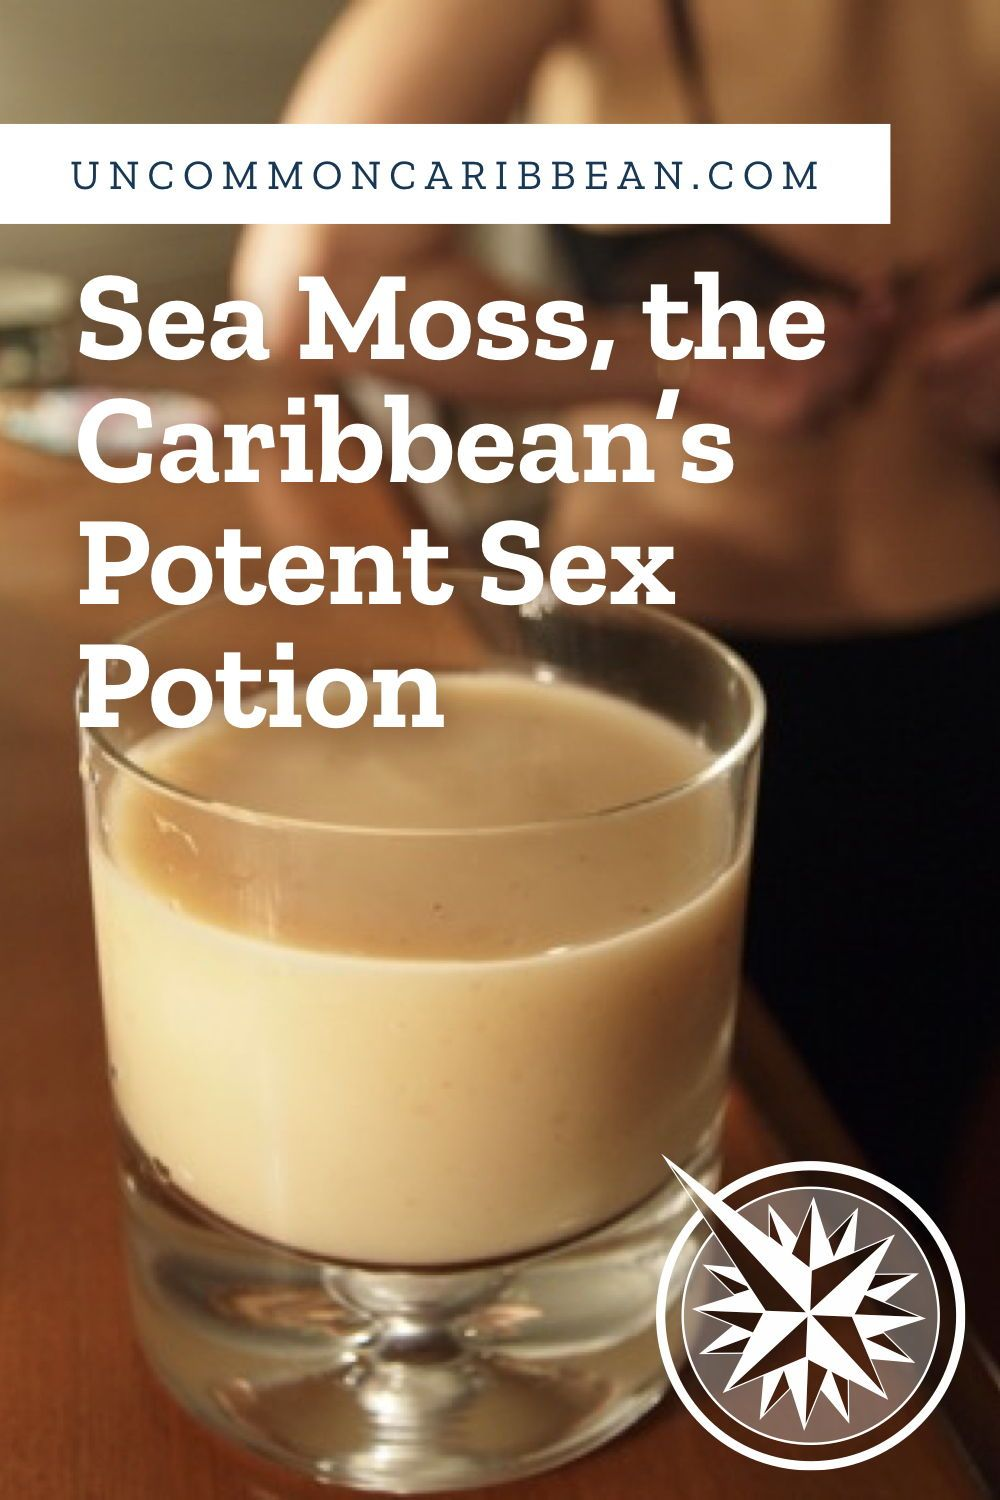 Sea Moss - Try The Caribbean's Most Potent Sex Pot